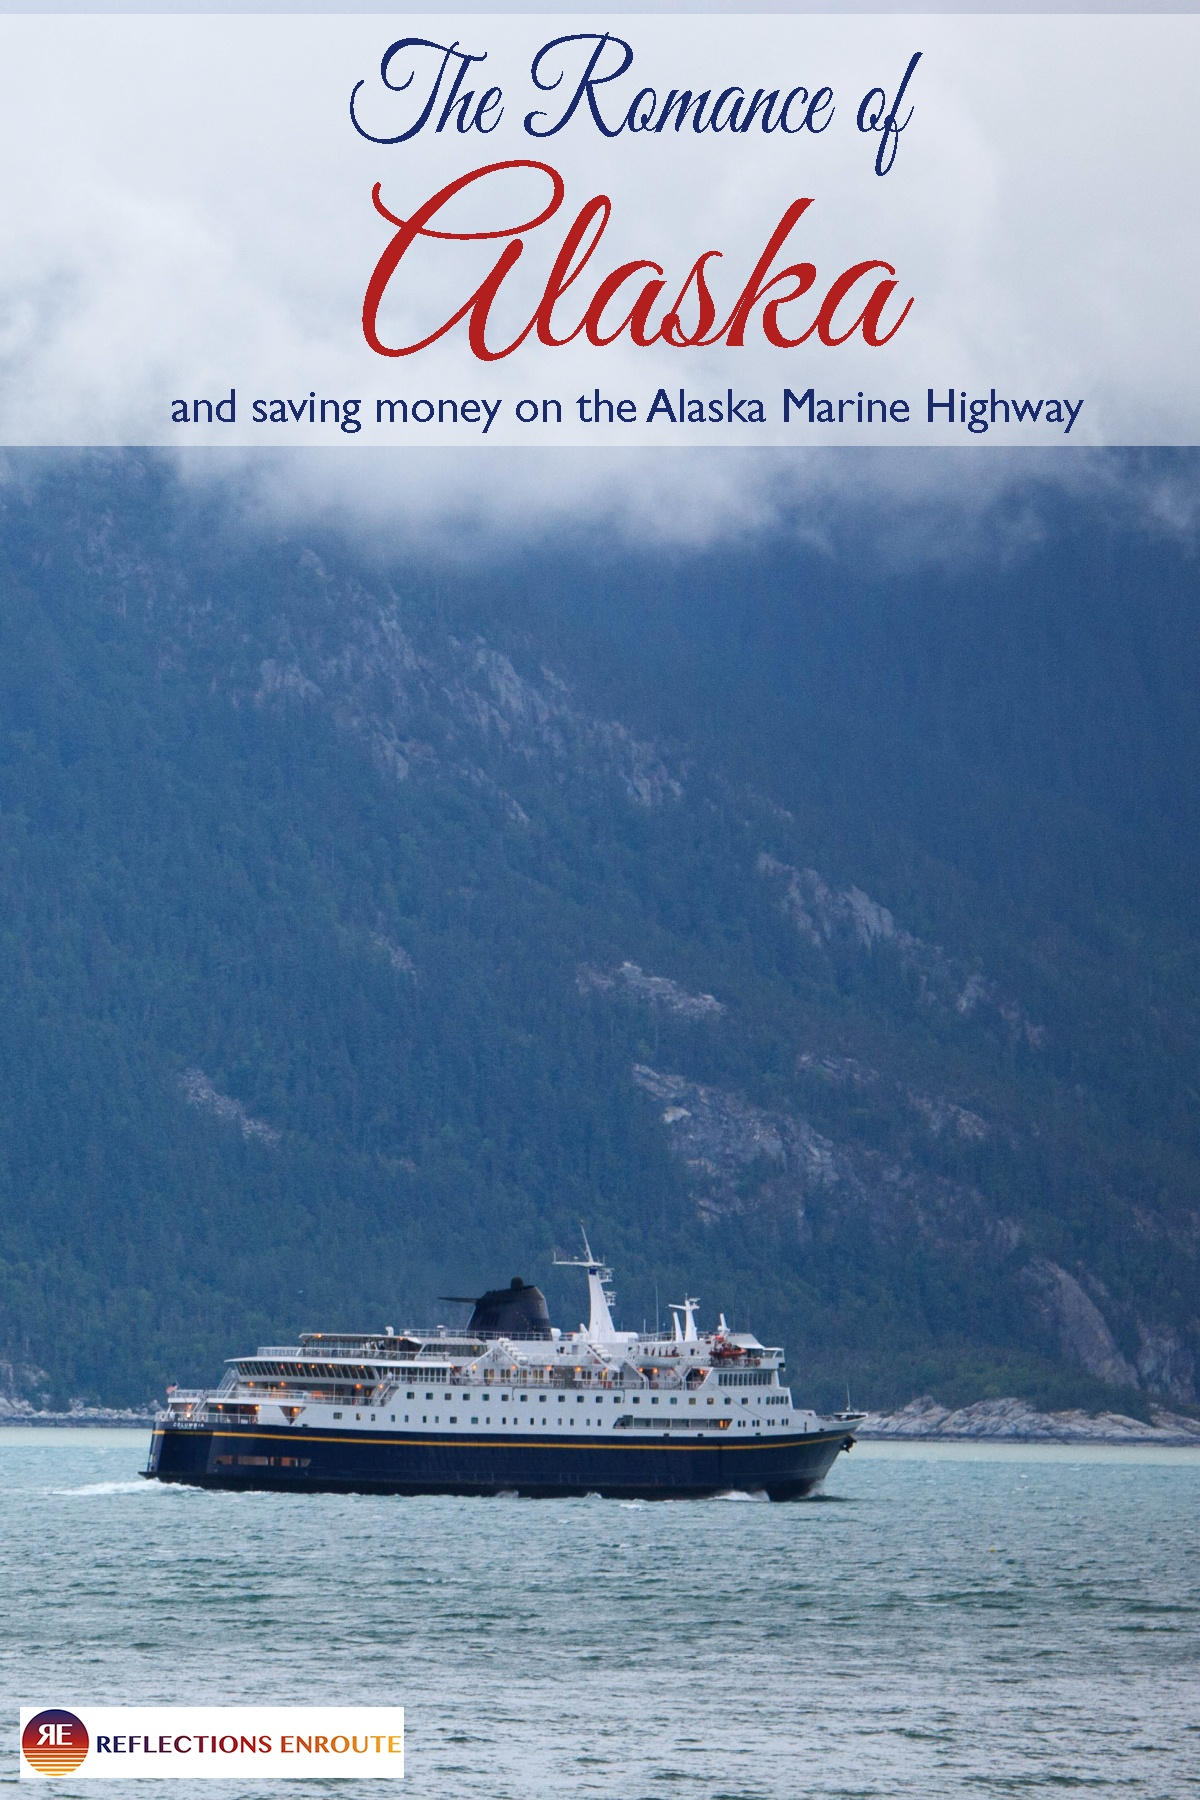 If a trip to Alaska filled with romance and adventure is your dream, take the Alaska Marine Highway!